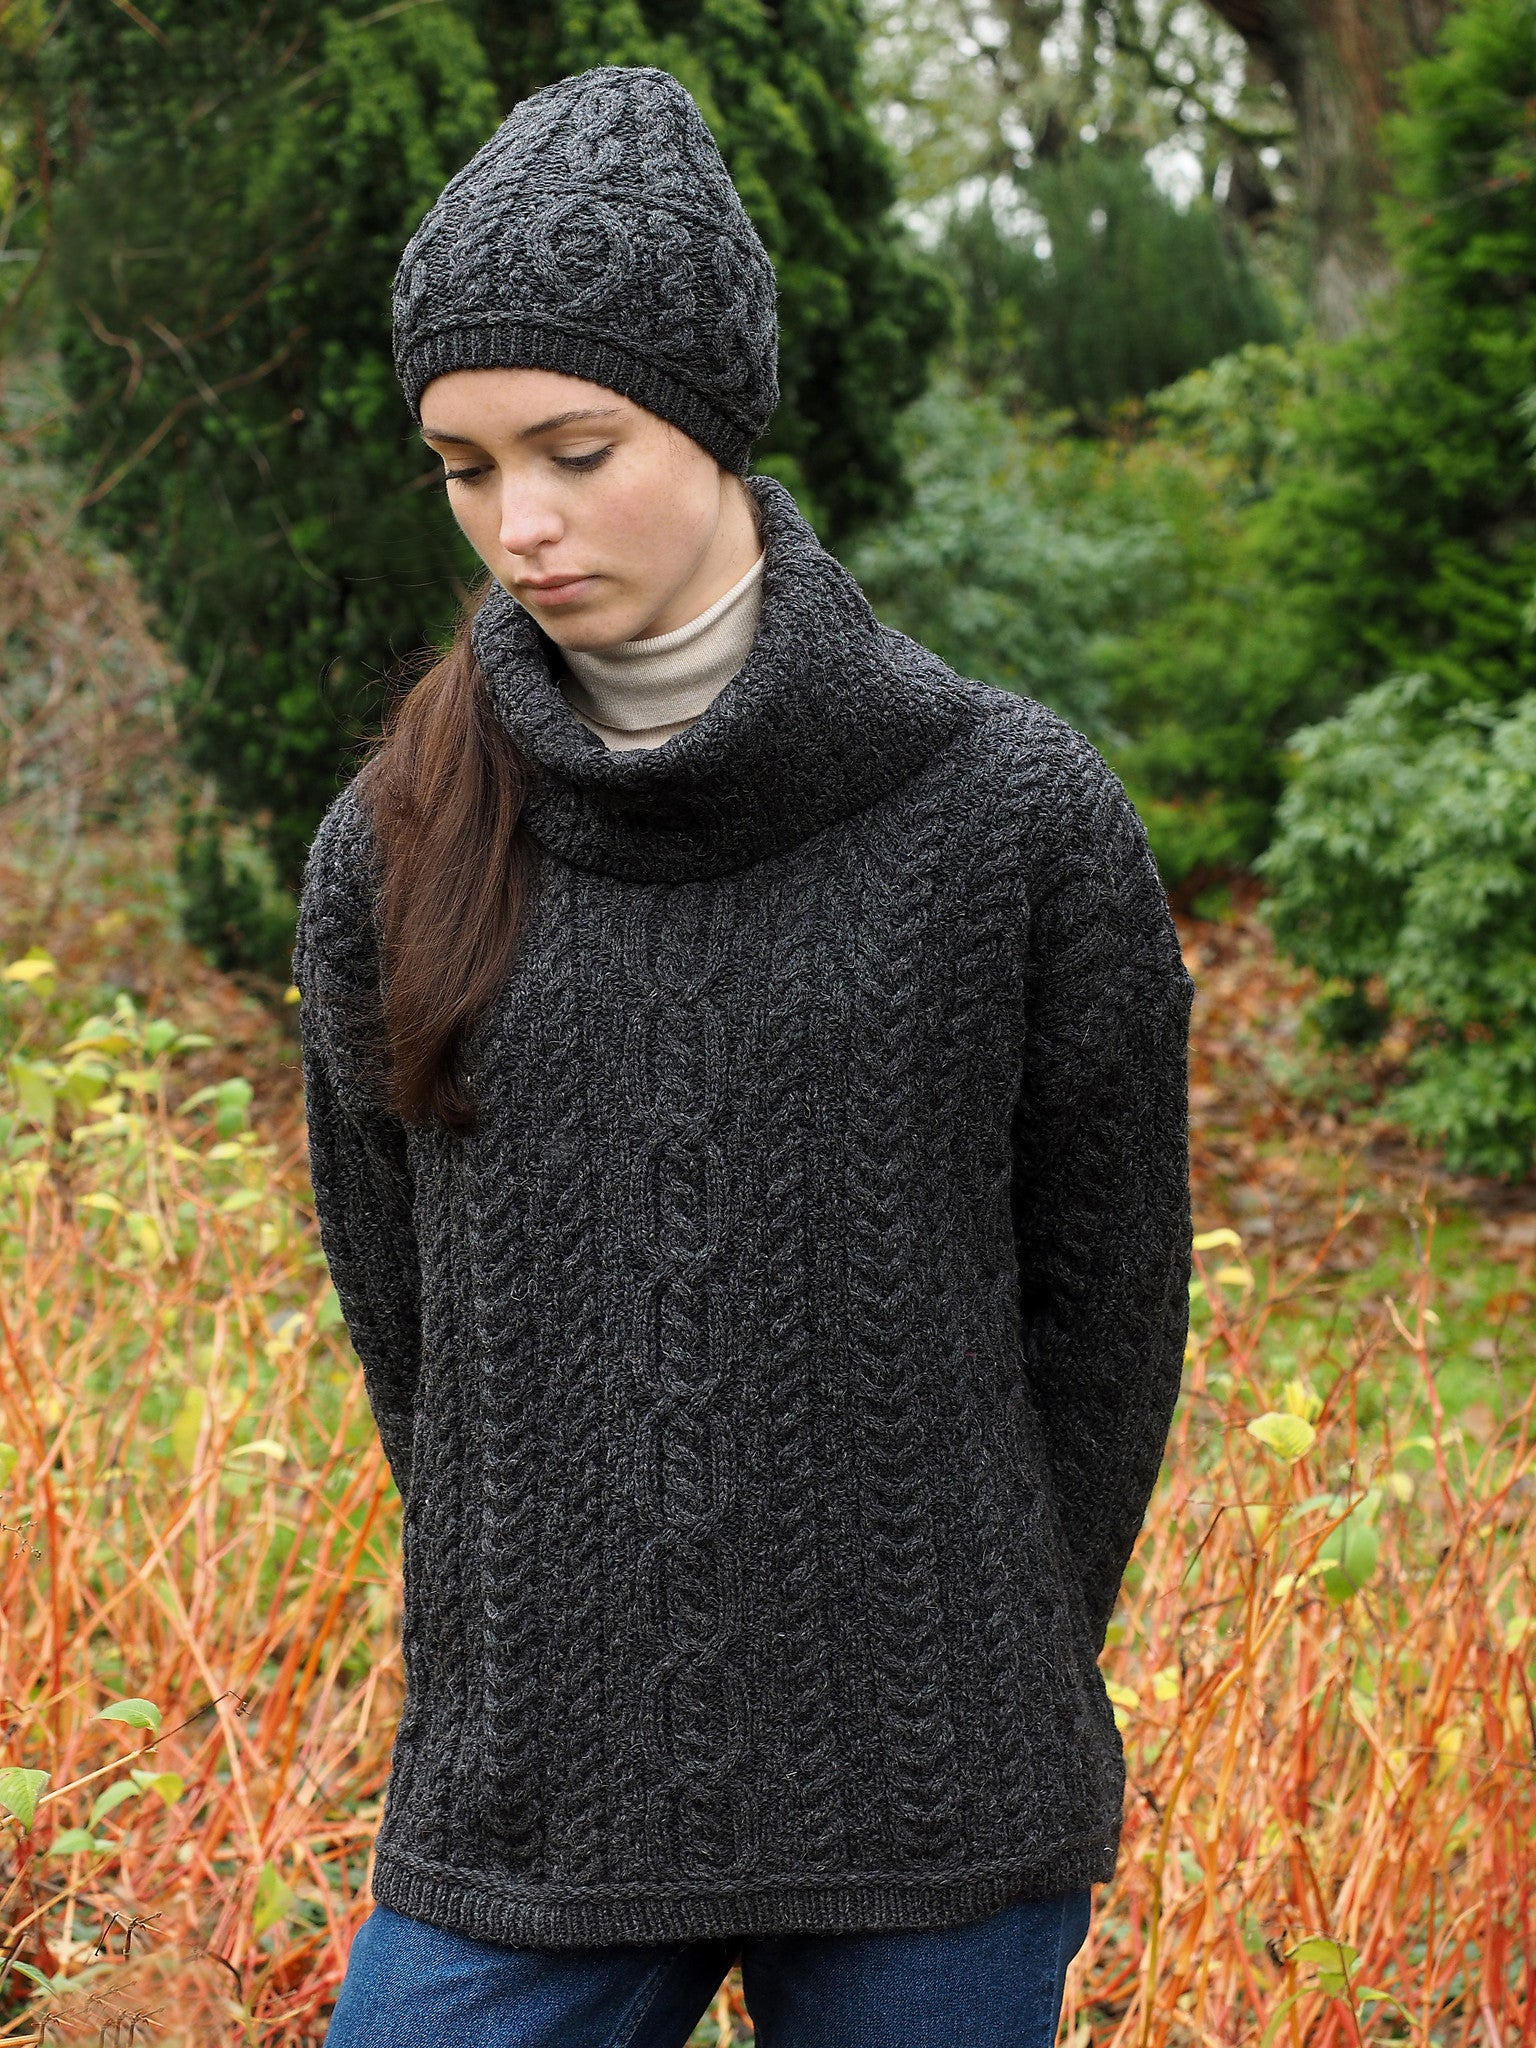 Women's Baggy Aran Sweater - Charcoal Grey